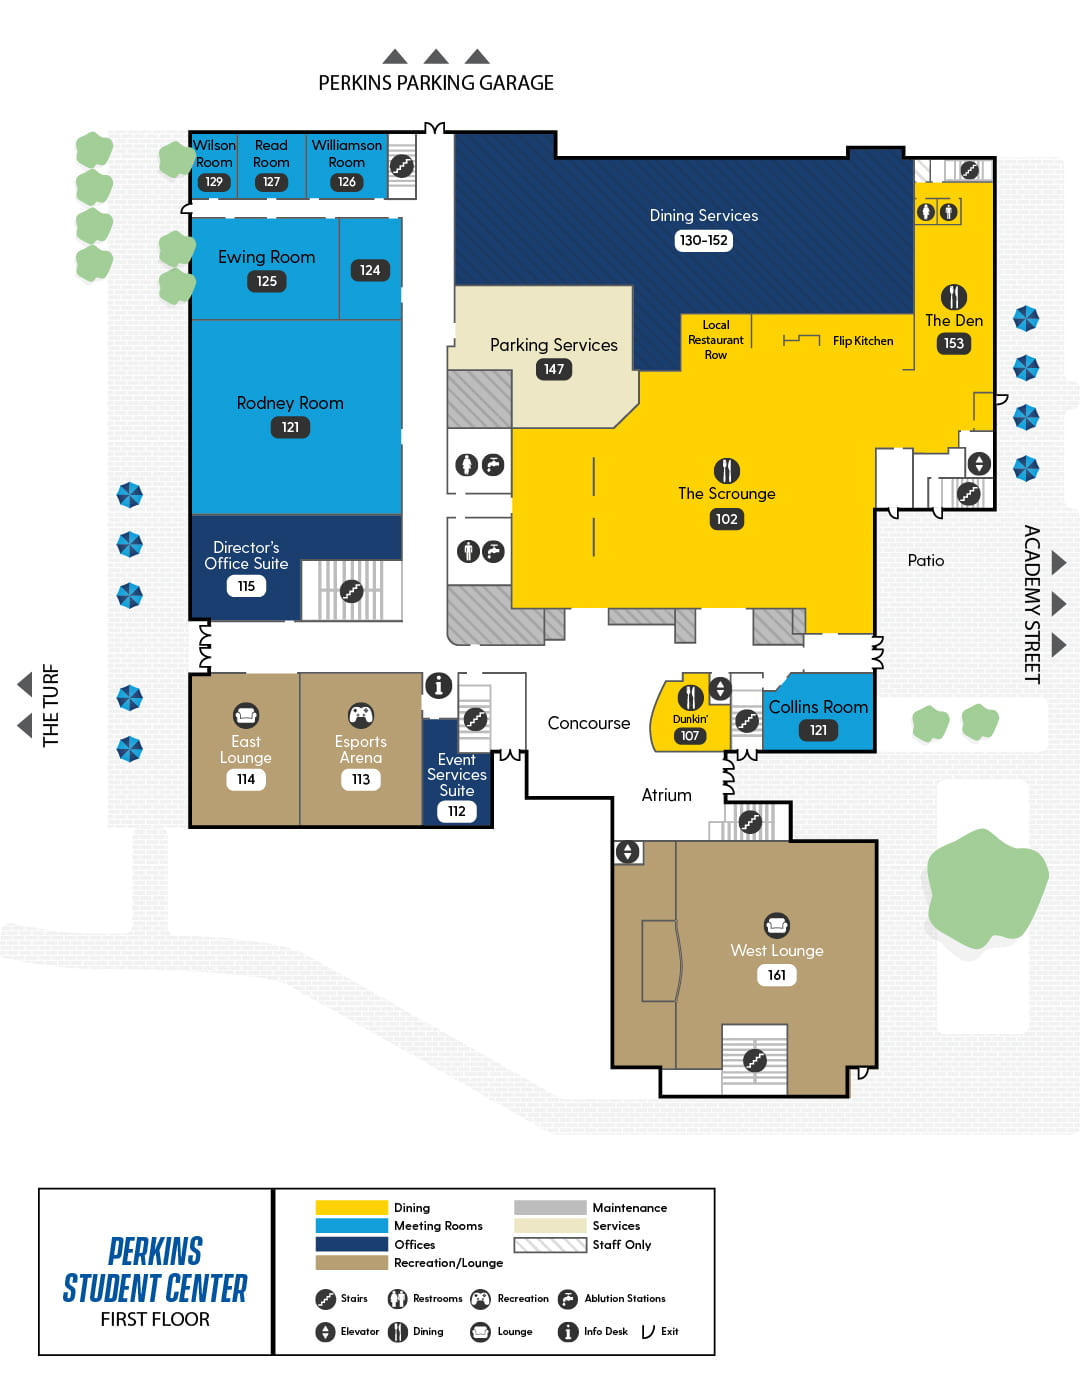 Perkins First Floor Map, showing The Scrounge, The Den by Dennys, Dunkin', East and West Lounge, Esports Arena, Event Services Office, and several reservable meeting rooms